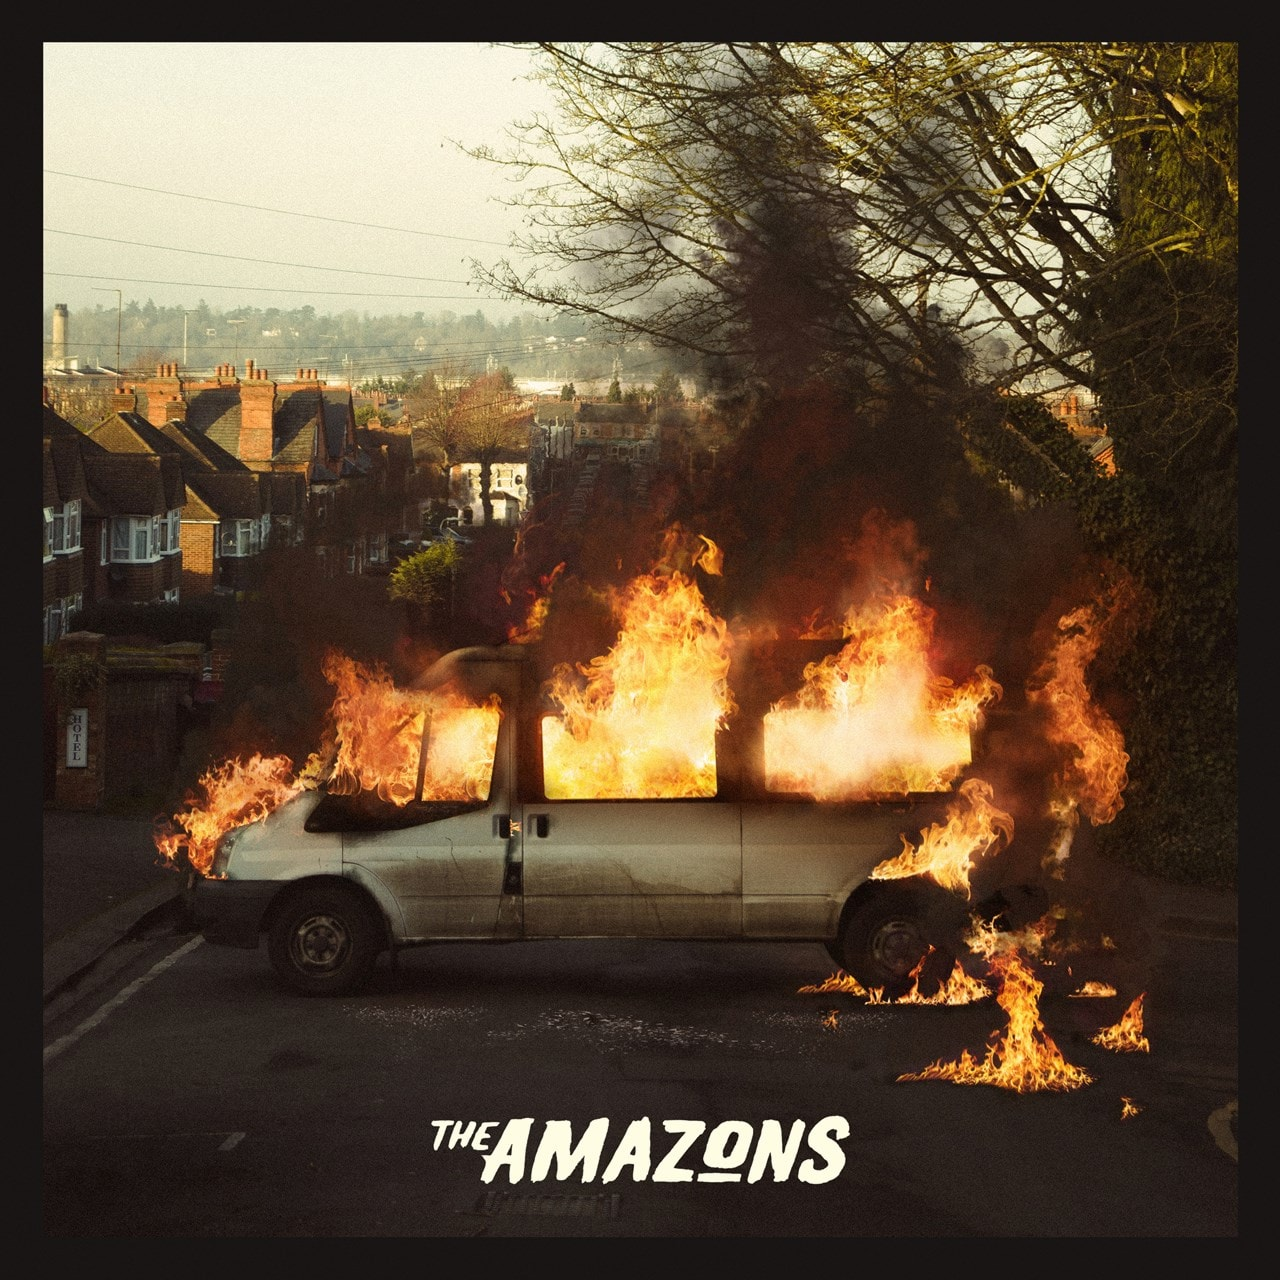 The Amazons - 1